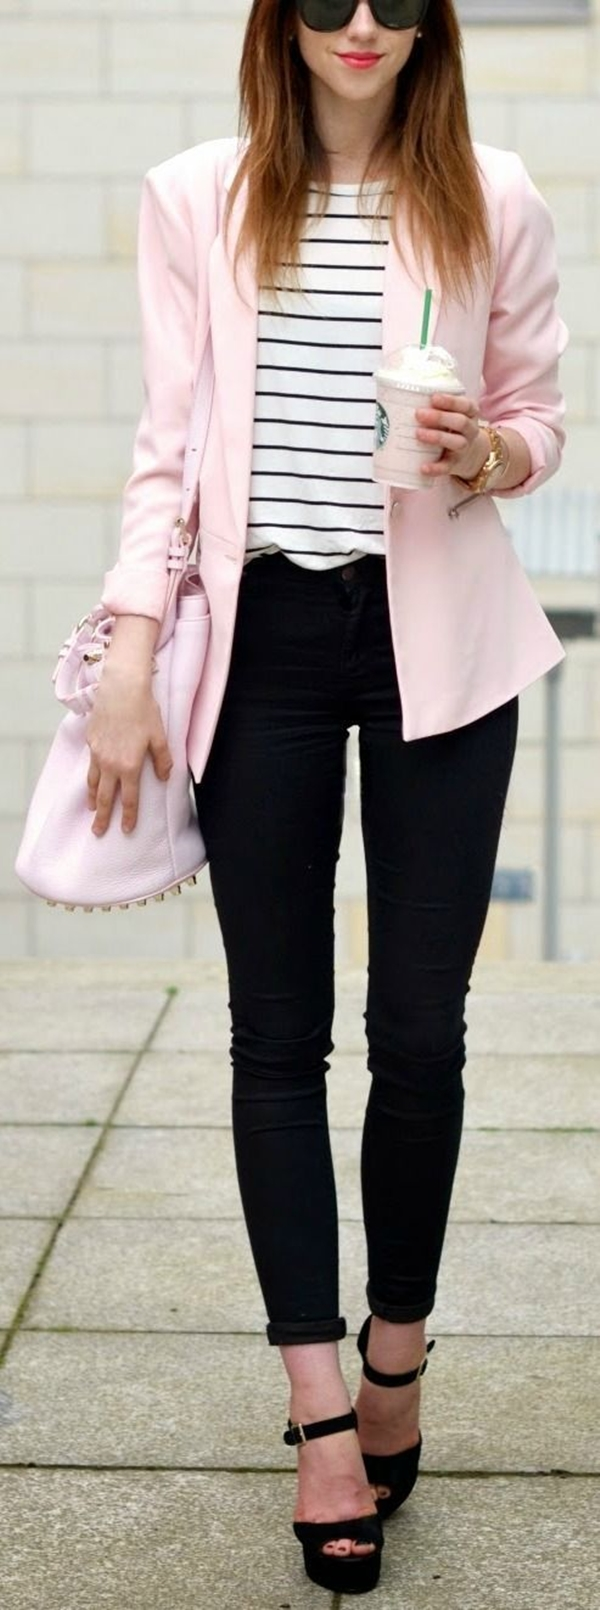 outfits-with-blazer-for-office-women-23